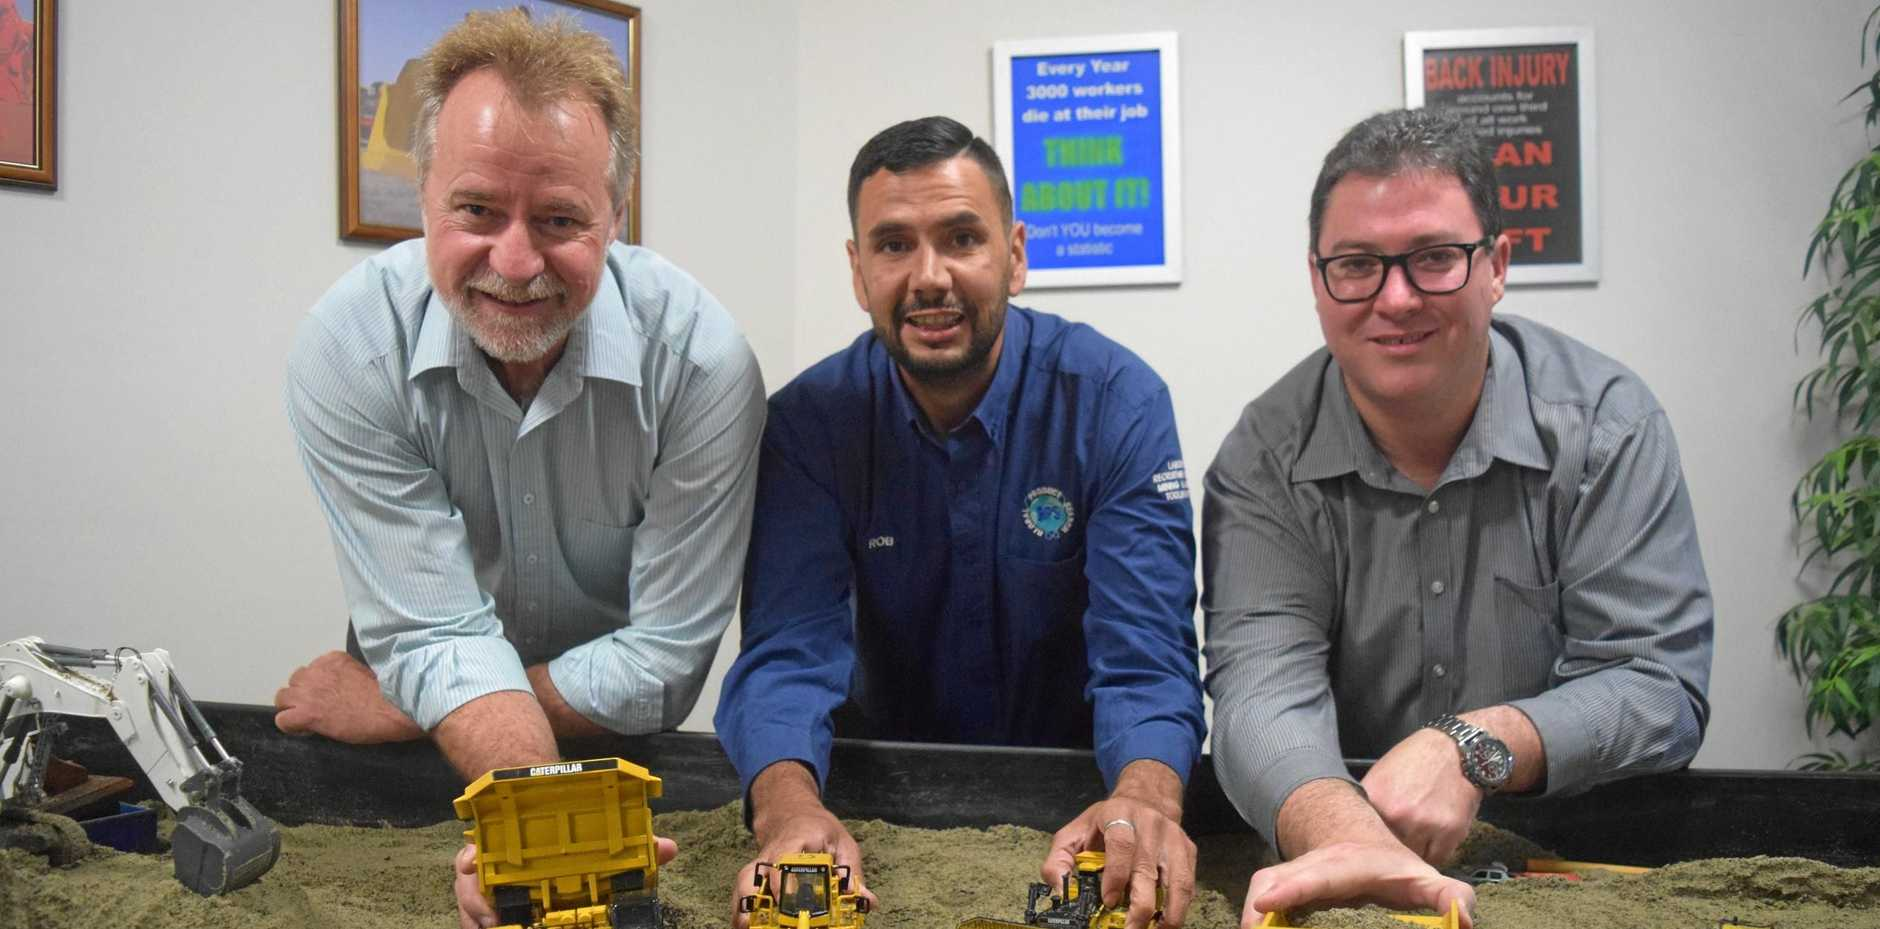 Minister for Indigenous Affairs Nigel Scullion, left, Global Product Search trainer operator Robert Gibbs and Dawson MP George Christensen thest the simulation mine site sandpit.